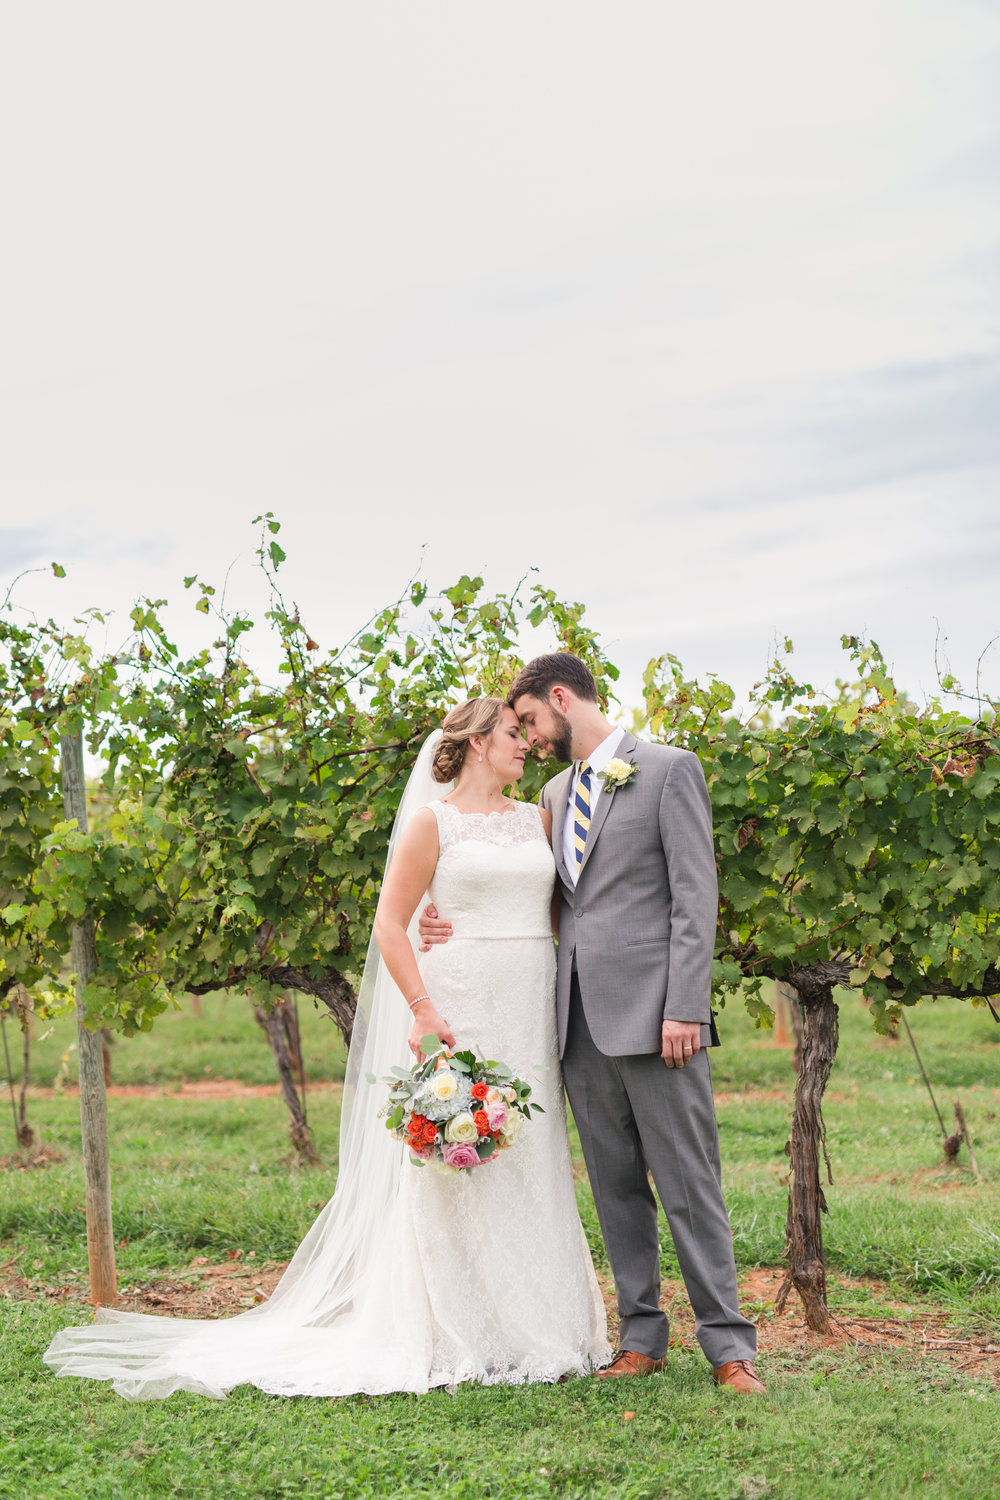 Keswick Vineyard Wedding Photographer || Charlottesville and Central Virginia Wedding Photographer || www.ashleyeiban.com